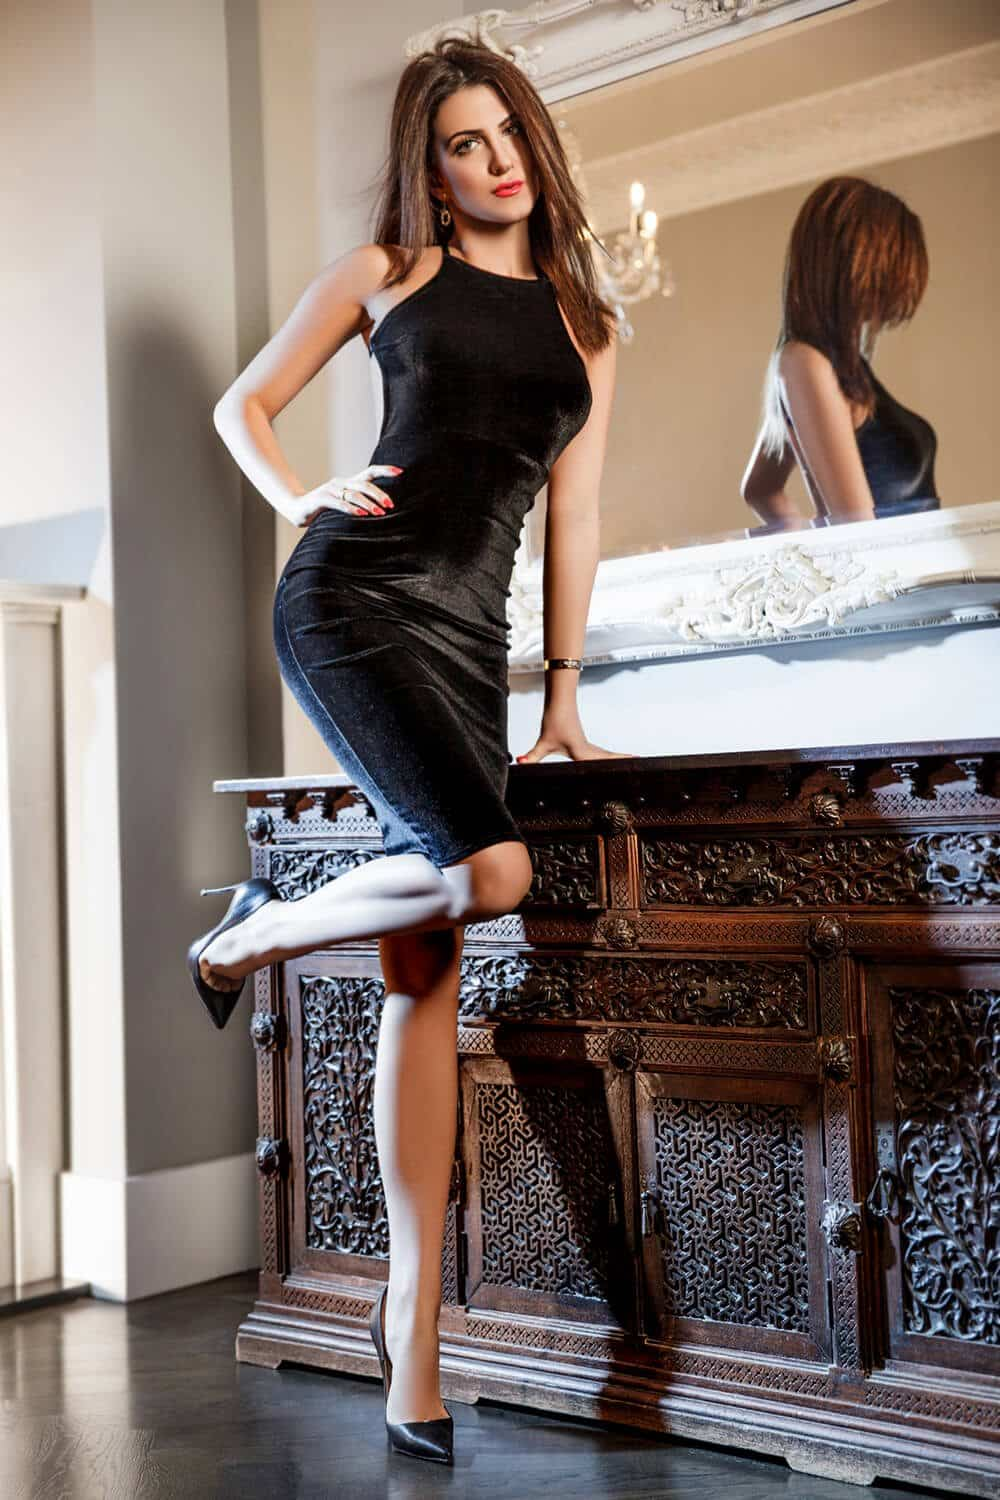 Ava is a Tall, Bi-Sexual Knightsbridge Escort